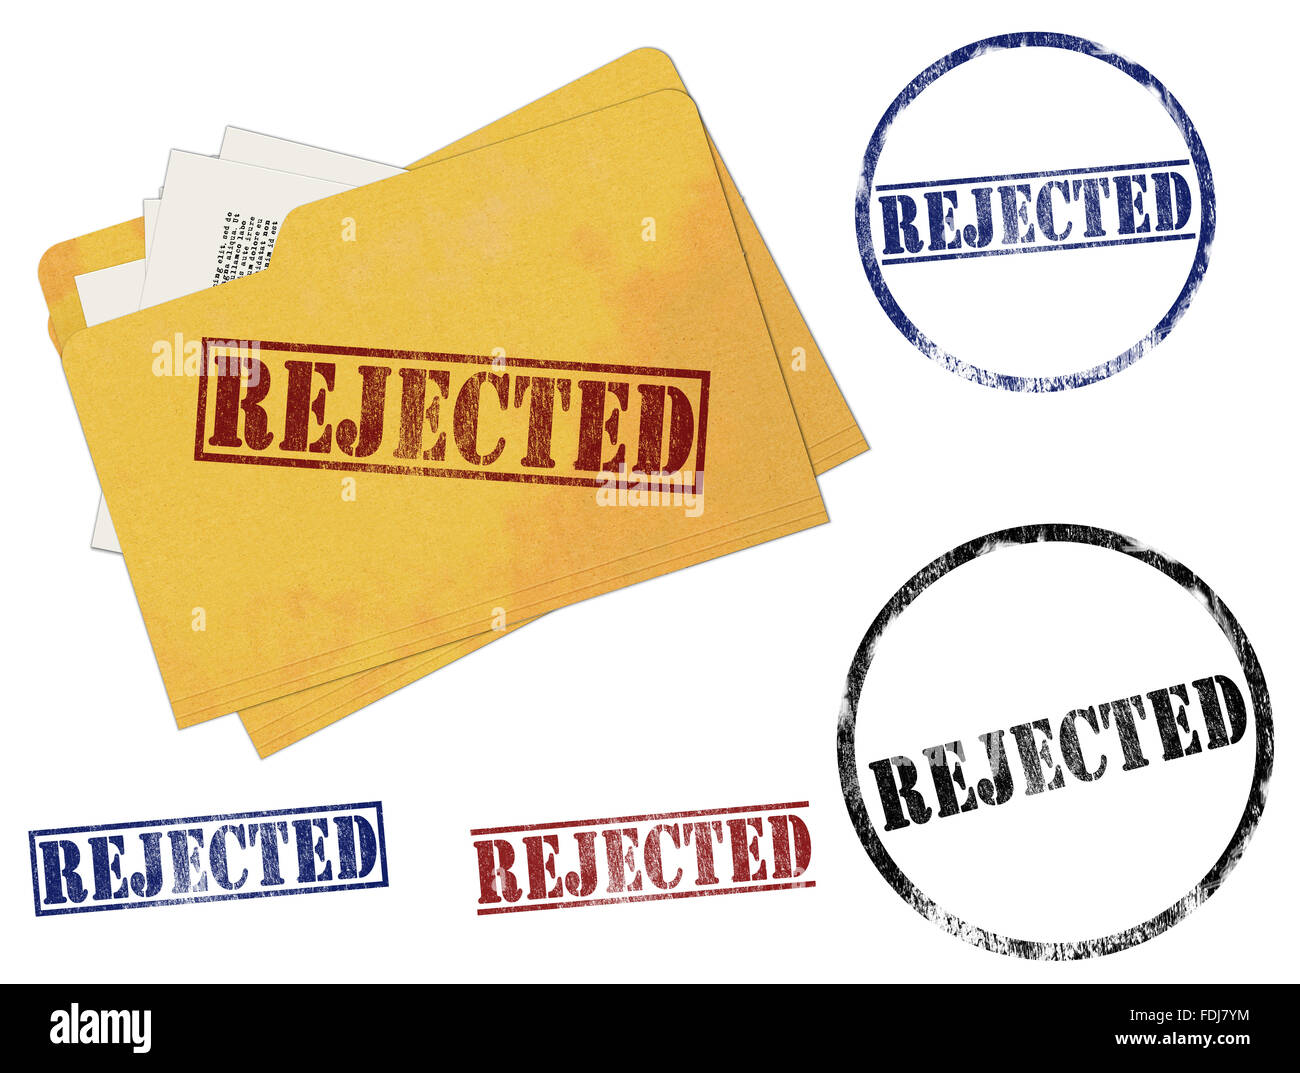 Rejected Rubber Stamp Marks Stock Photo, Royalty Free ...